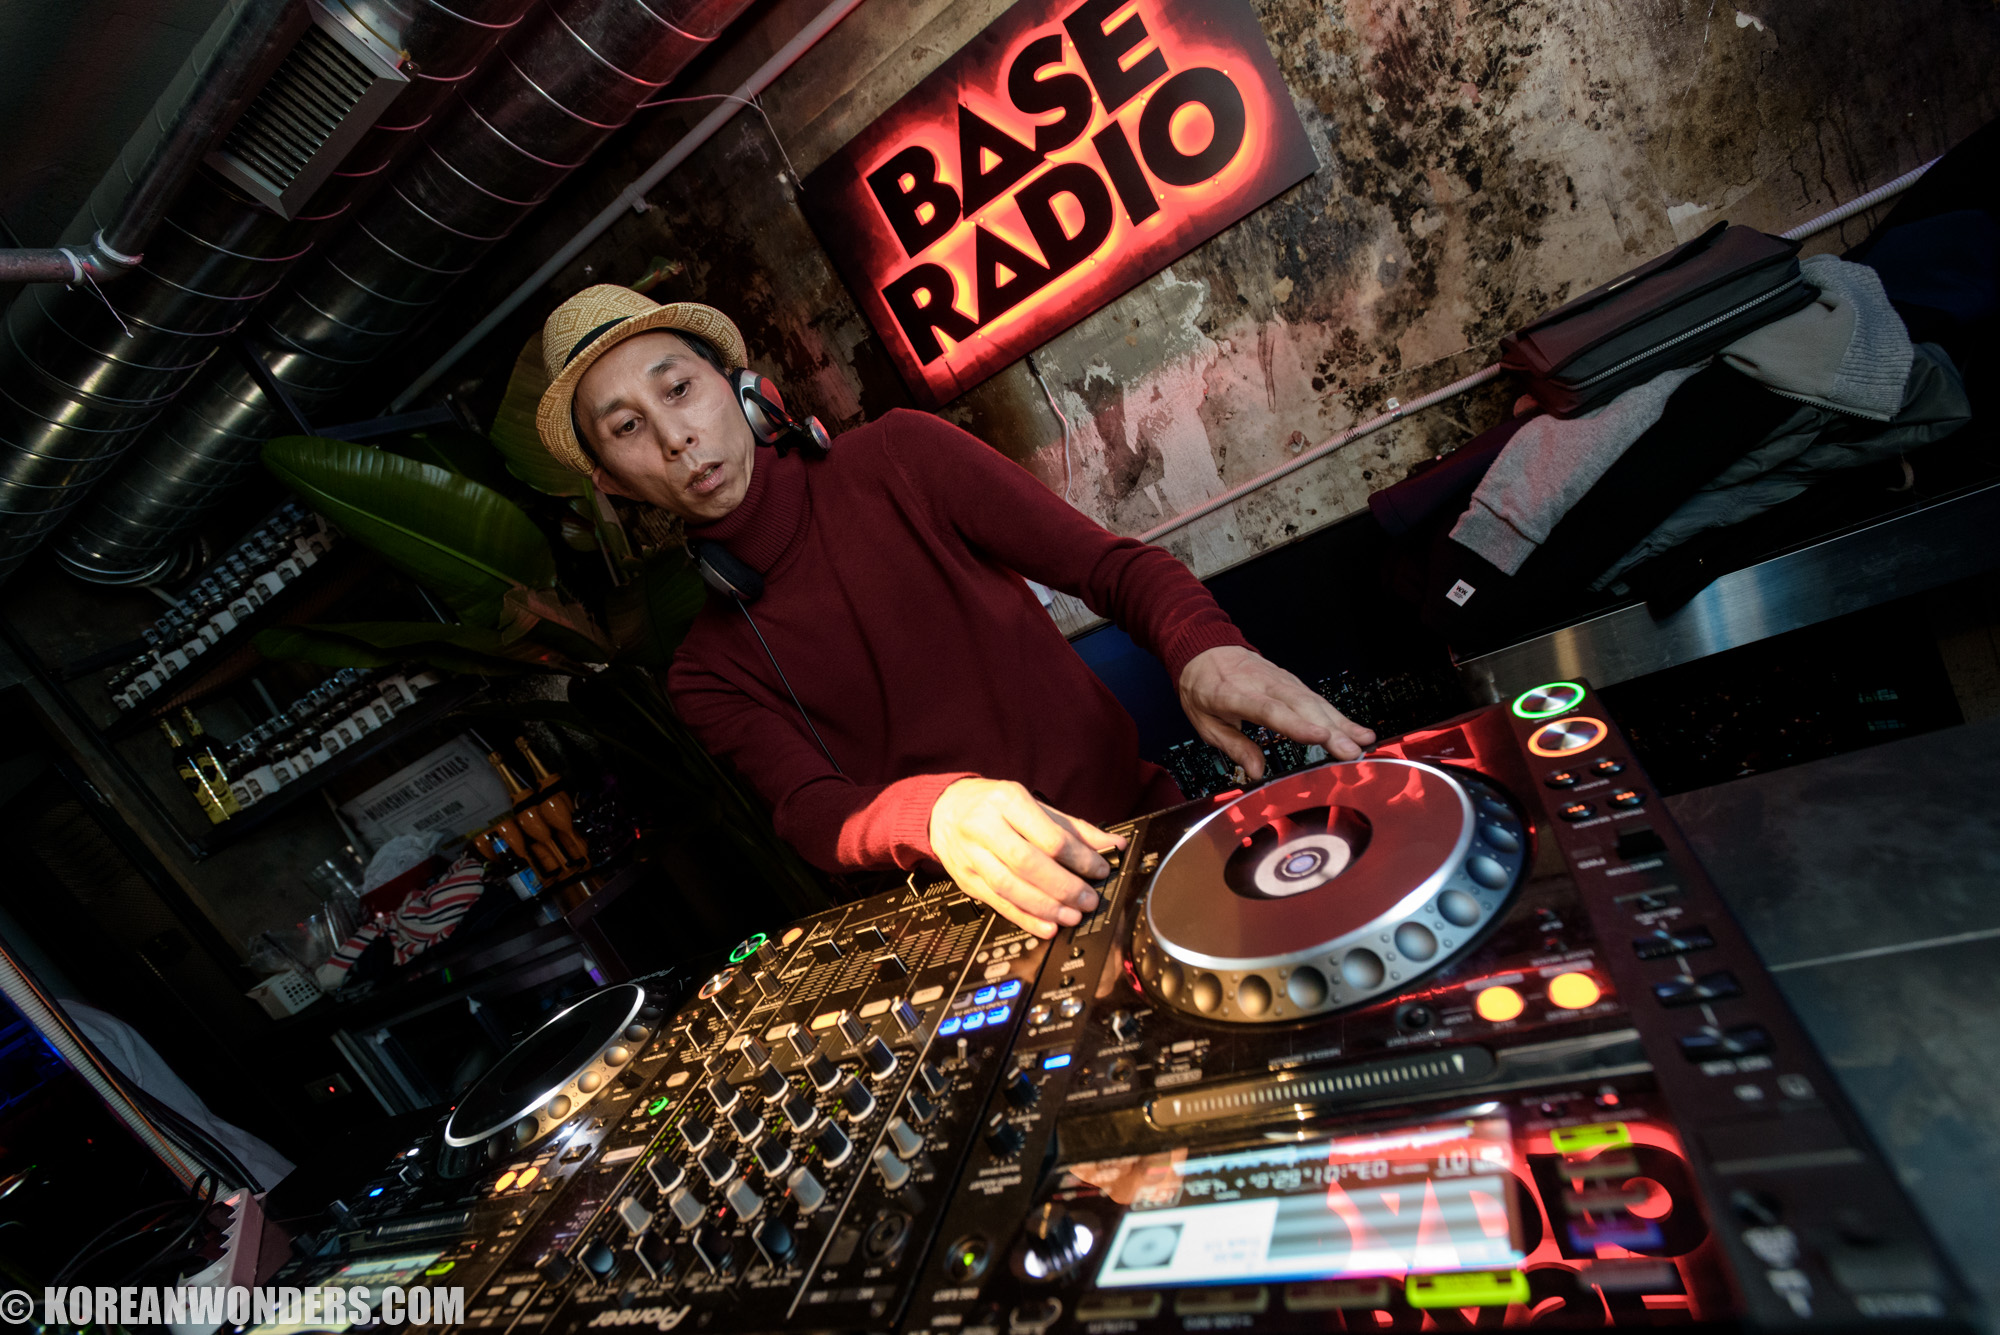 BASE RADIO Party at Midnight Seoul - 2015.12.19 (Sat)